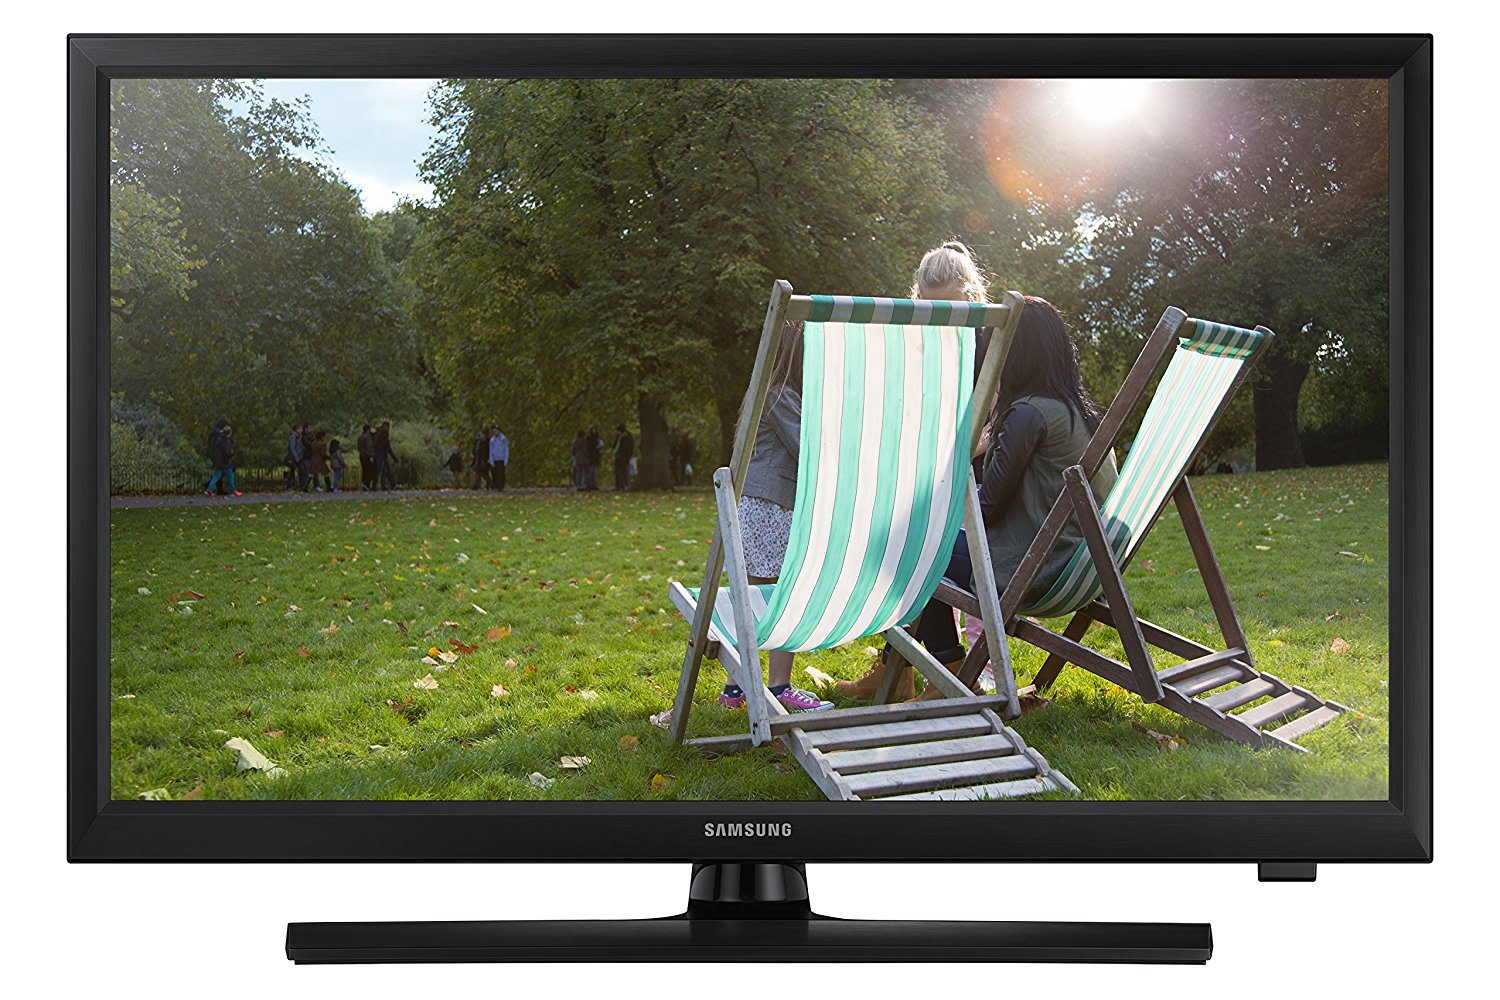 An image related to Samsung TE310 24-Inch HD LED TV